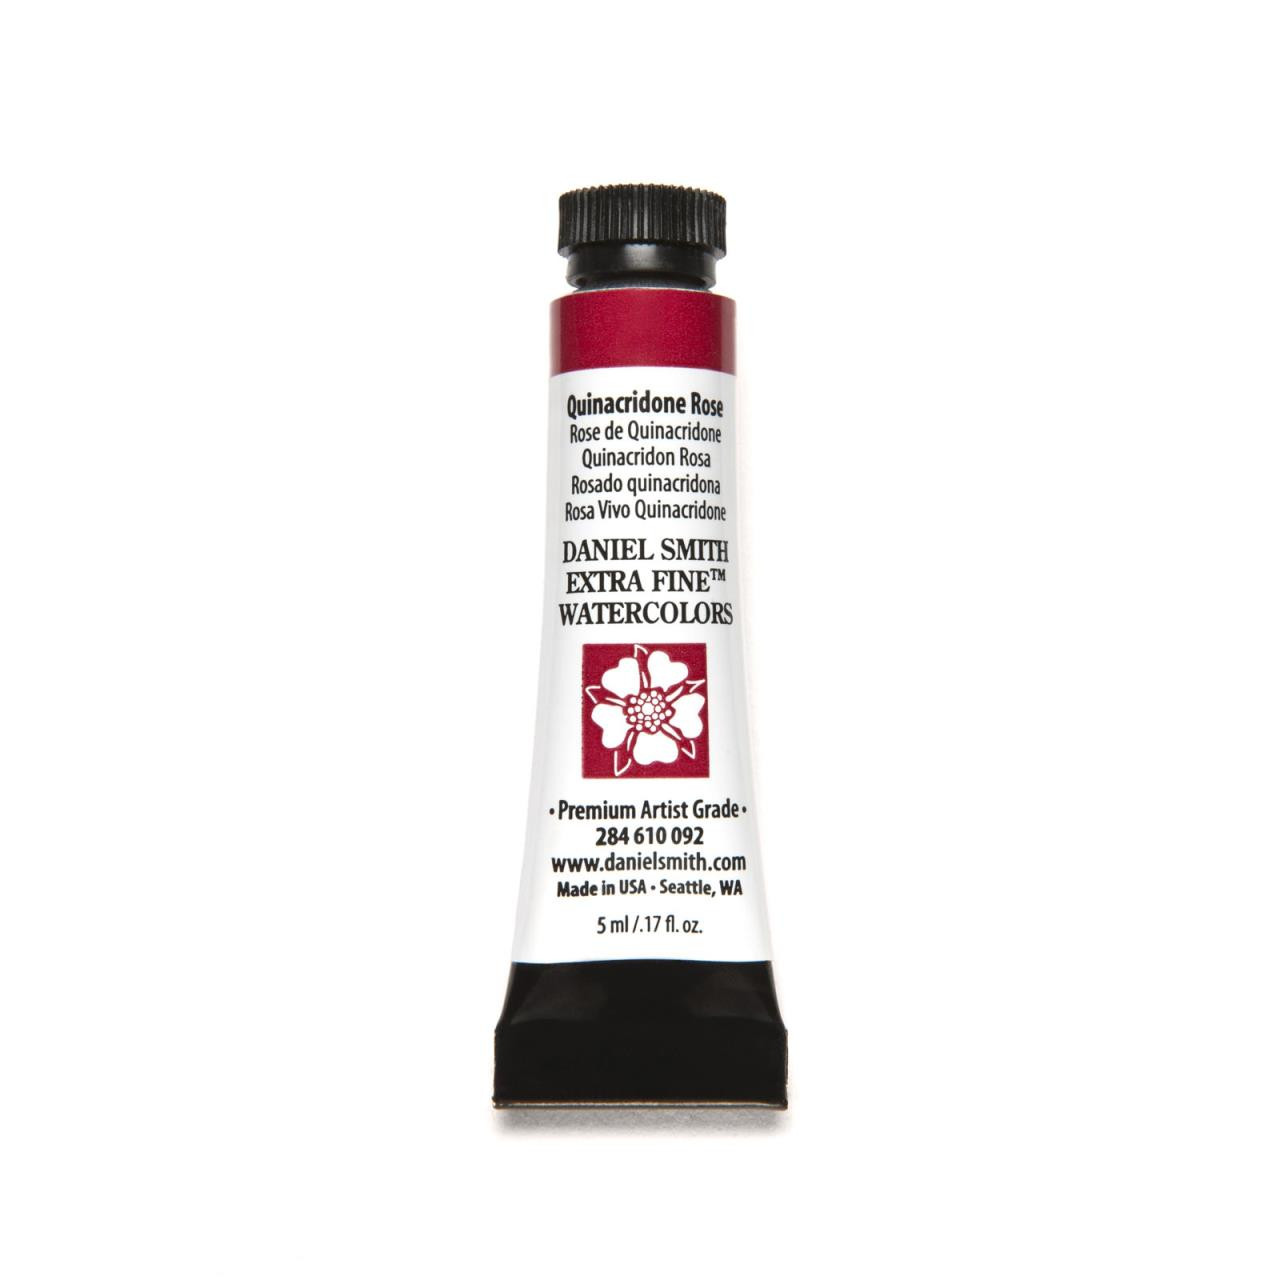 Quinacridone Rose, DANIEL SMITH Extra Fine Watercolors 5ml Tubes -